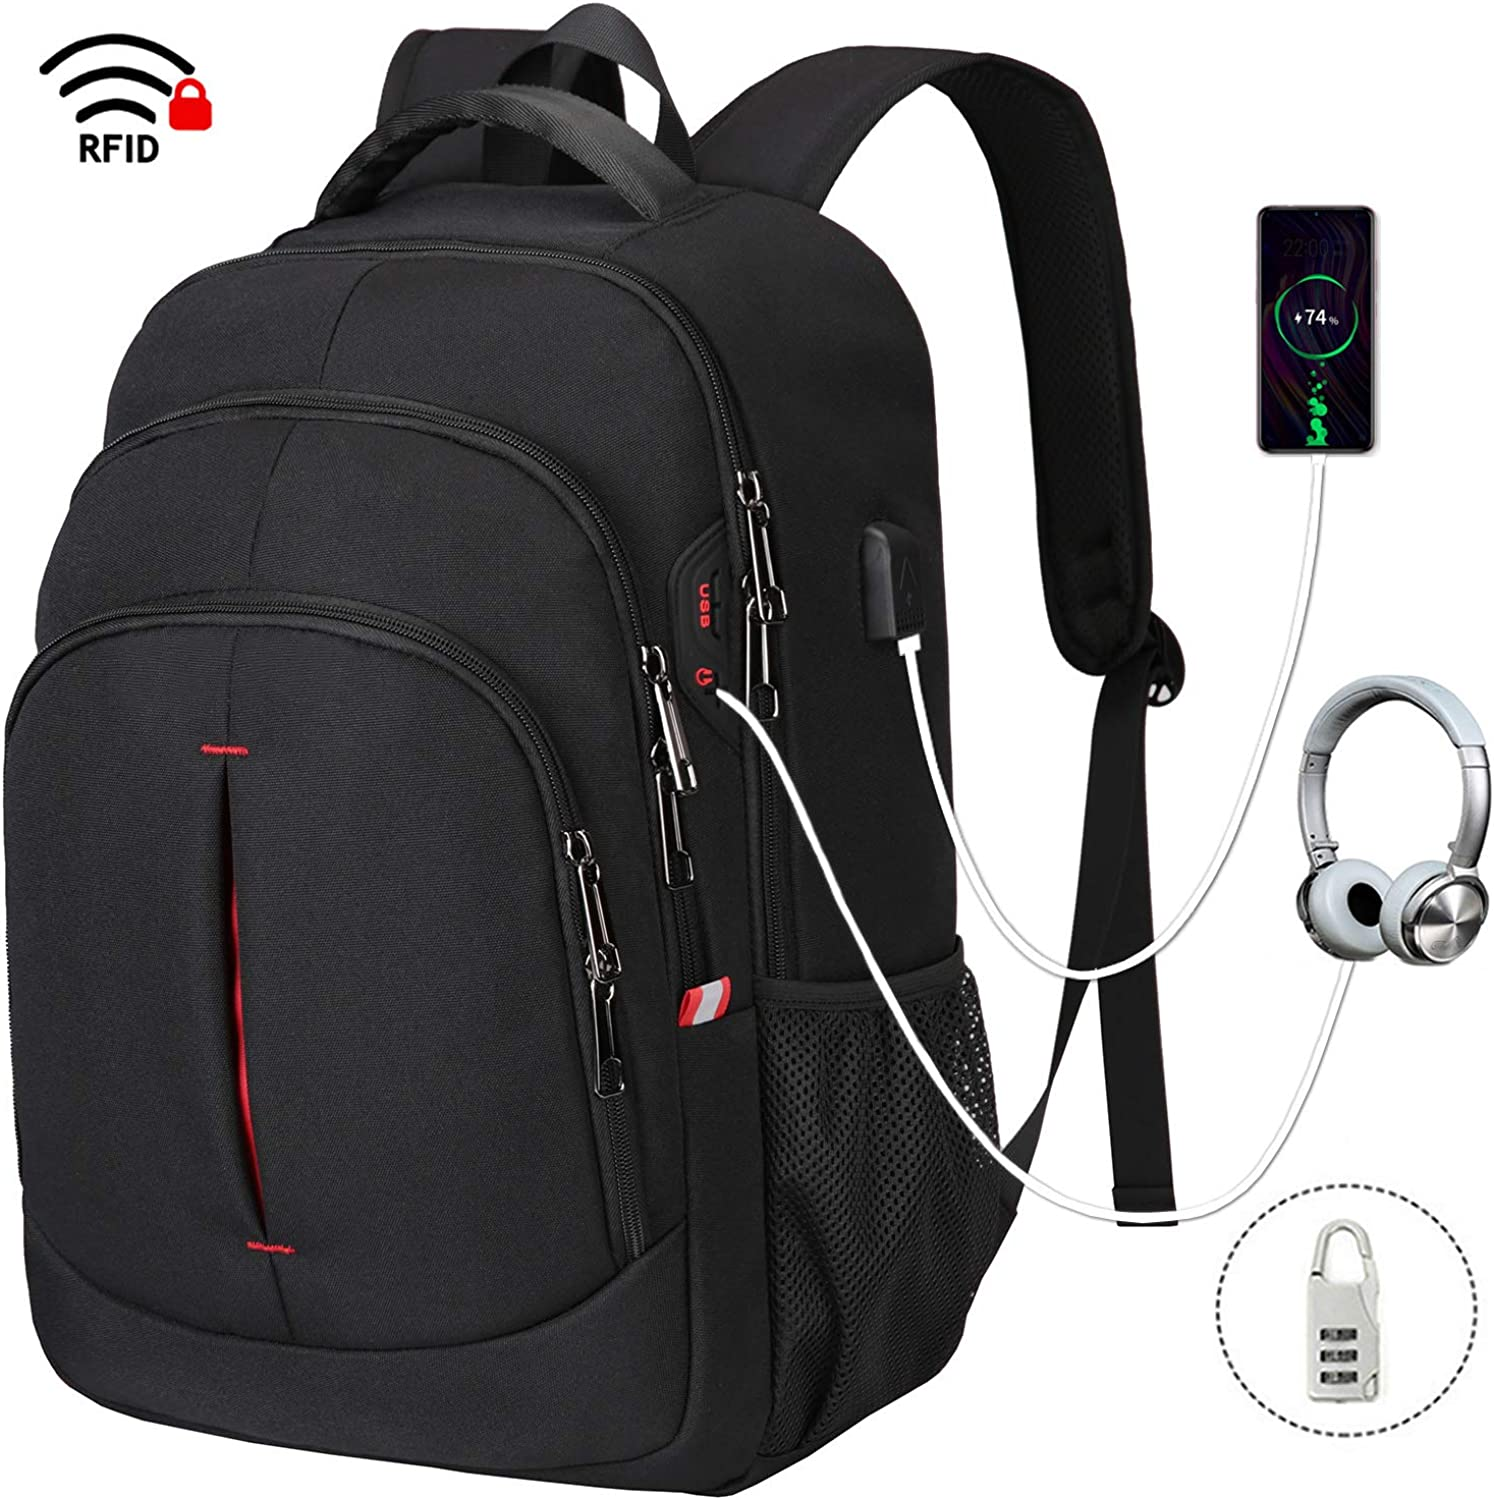 Gedone Laptop Backpack, Travel Business Backpack for Men & Women with USB Charging Port, Water Resistant Anti Theft School College Computer Back Pack Bag Fits Up to 15.6 Inch Notebook - Black